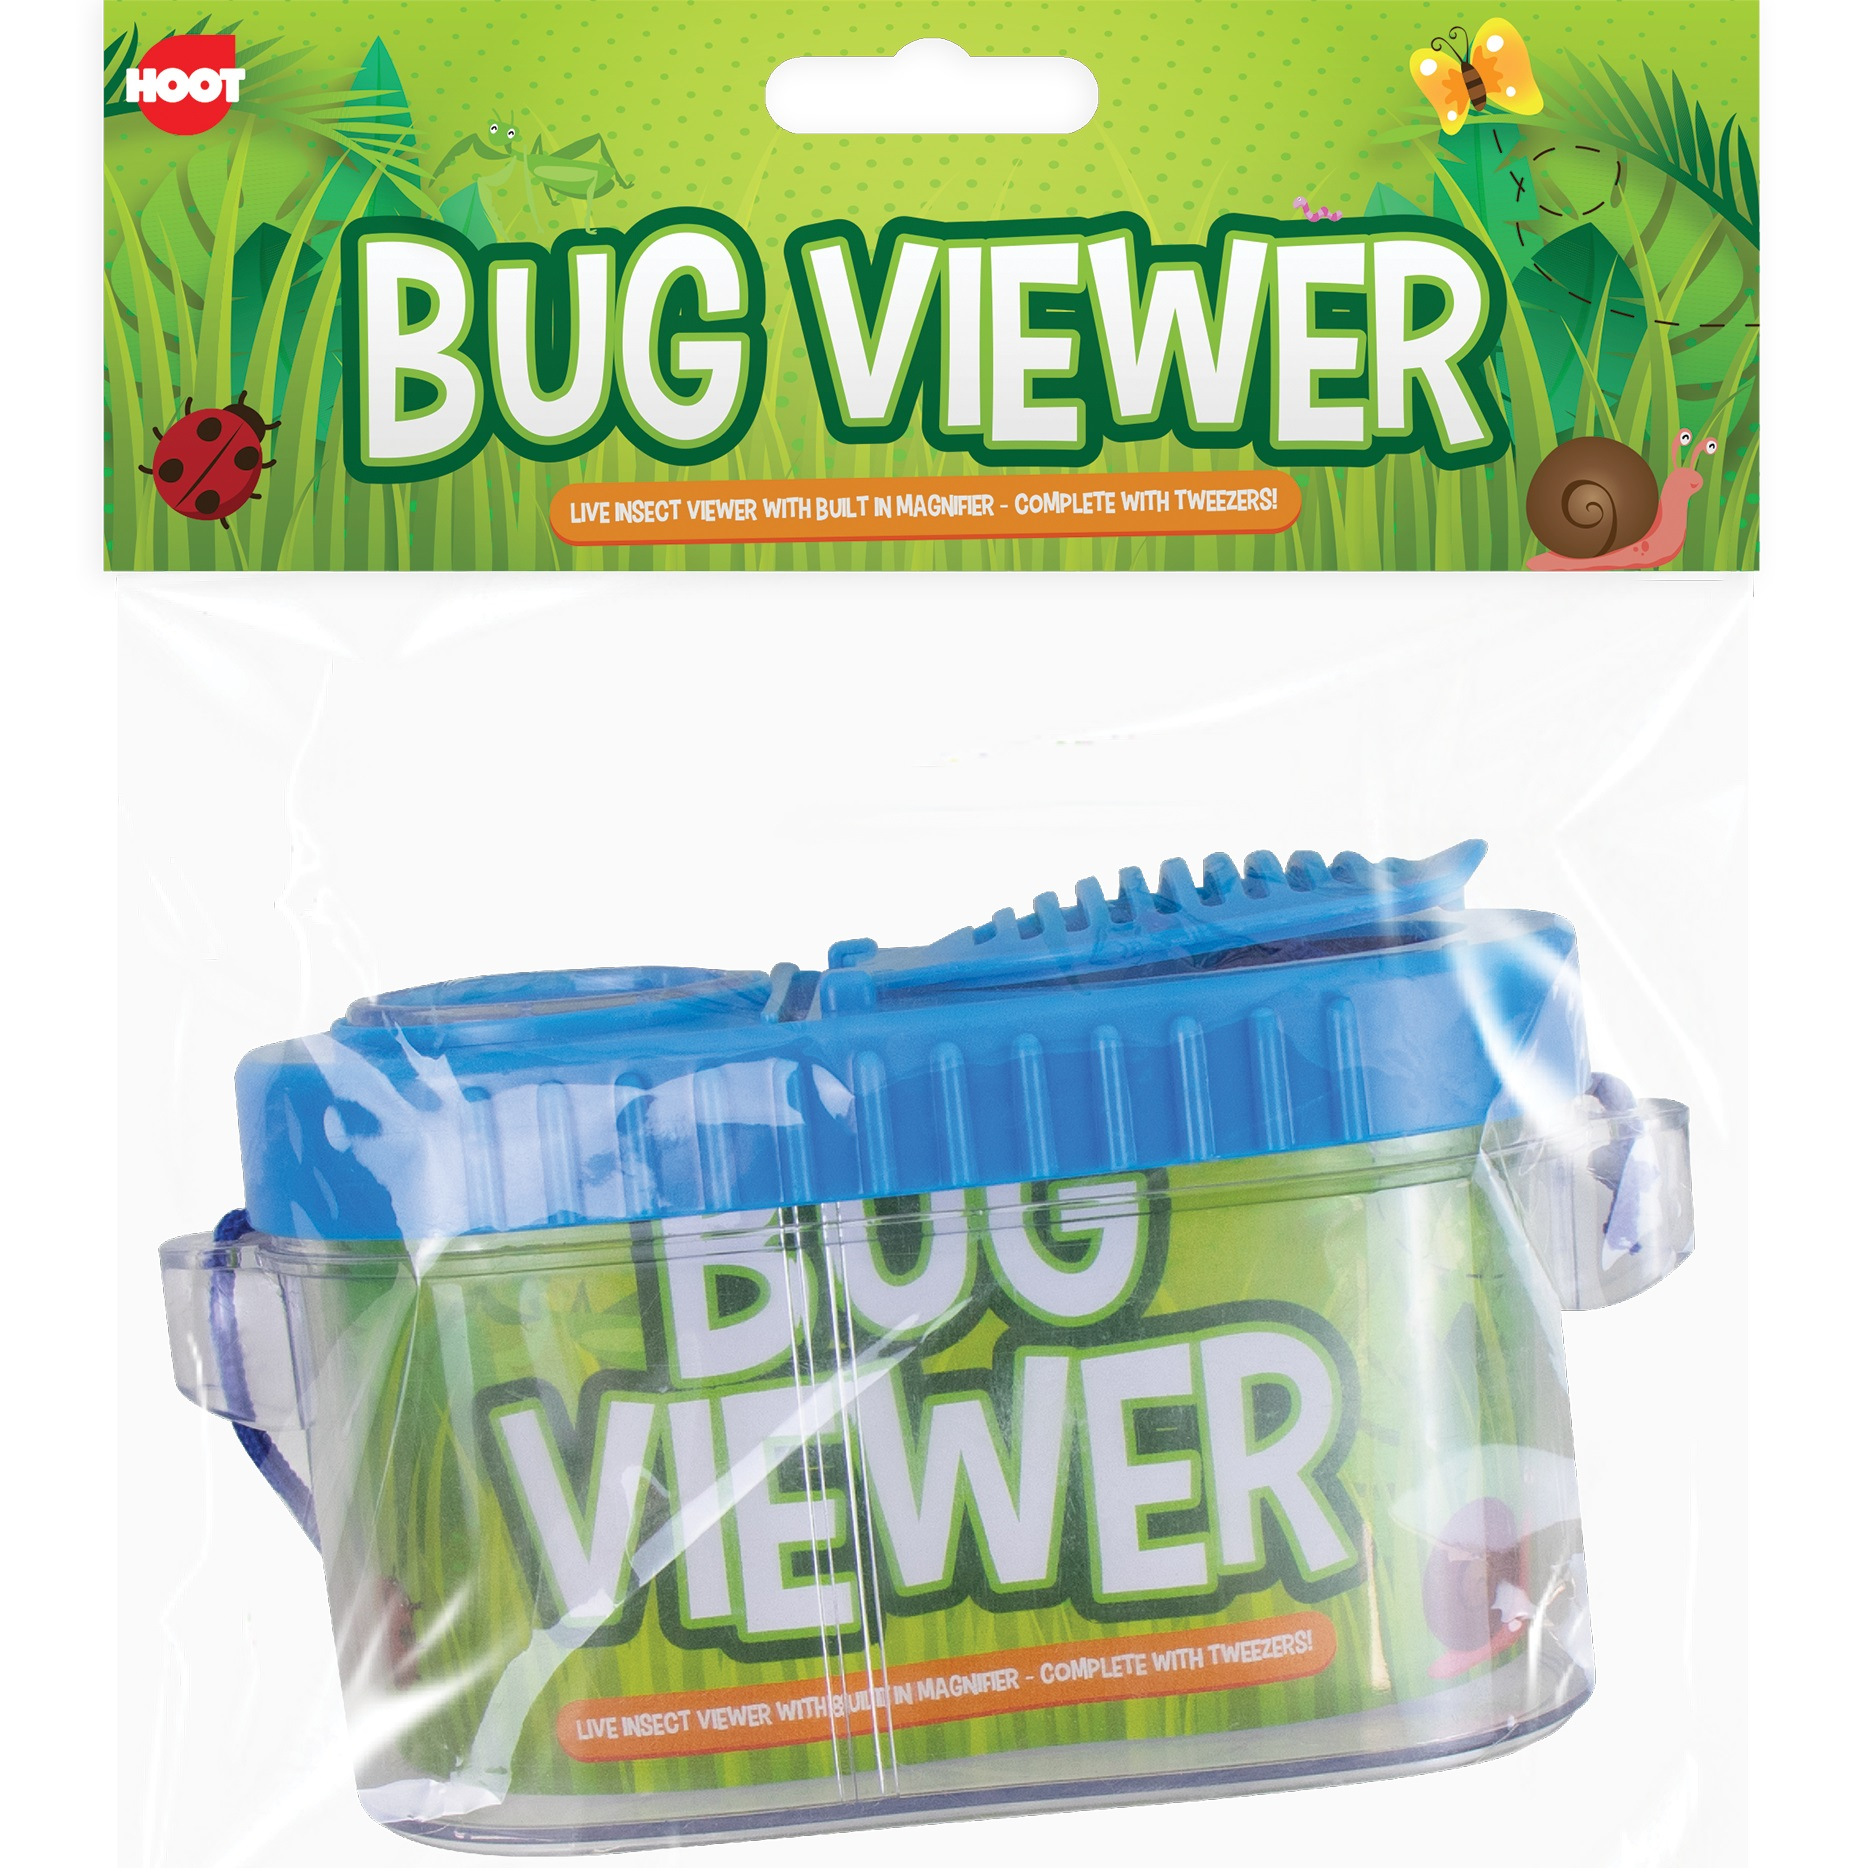 Butterfly Net BOY GIRL GARDEN DISCOVERY BUG TUB INSECT Viewer Magnify Pot